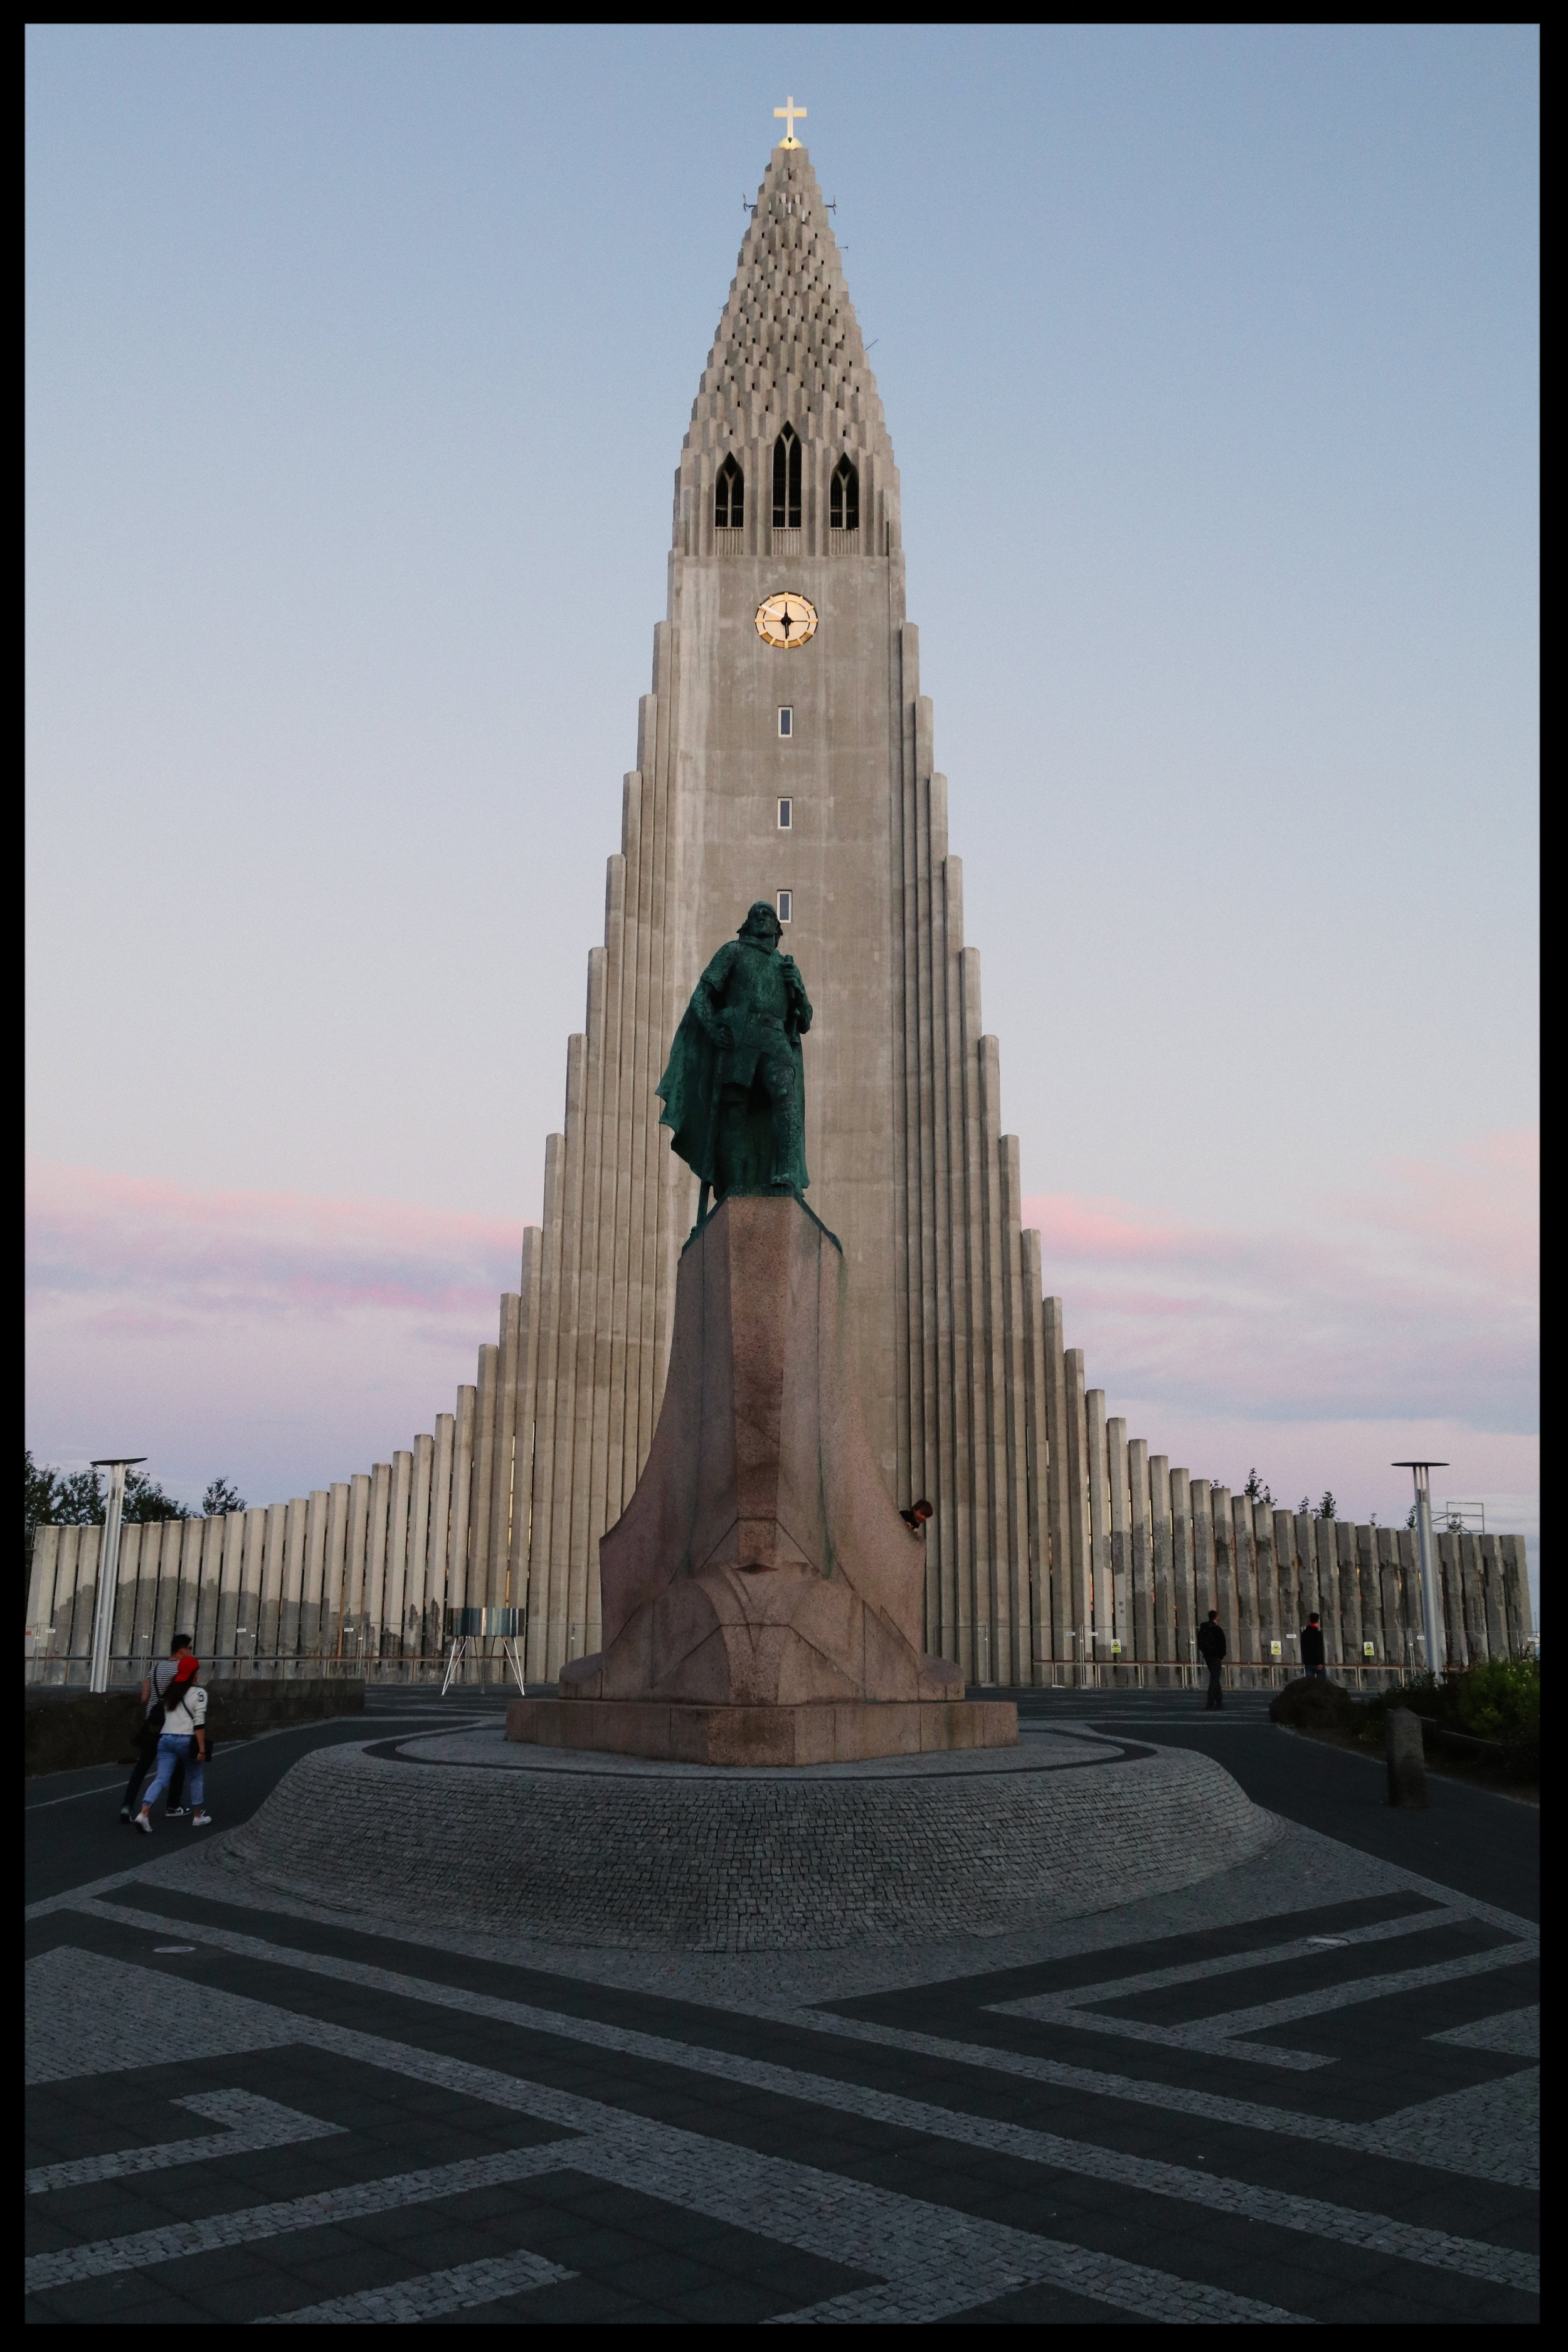 The iconic Hallgrímskirkja Lutheran church, a nod to Iceland's famous lava flows.   Photo by Michael Mundt.